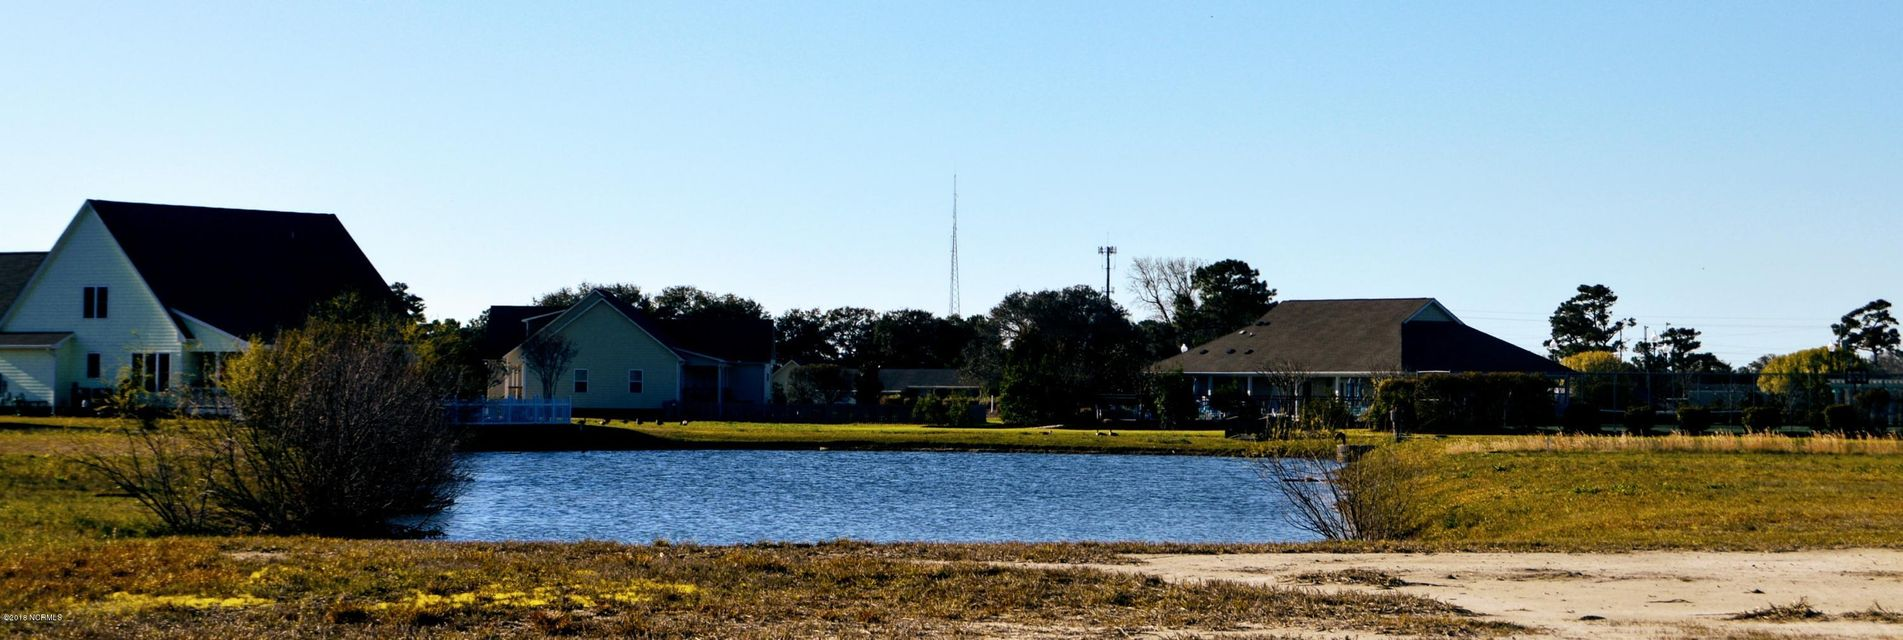 1800 Olde Farm Road, Morehead City, NC, 28557 | MLS #100104761